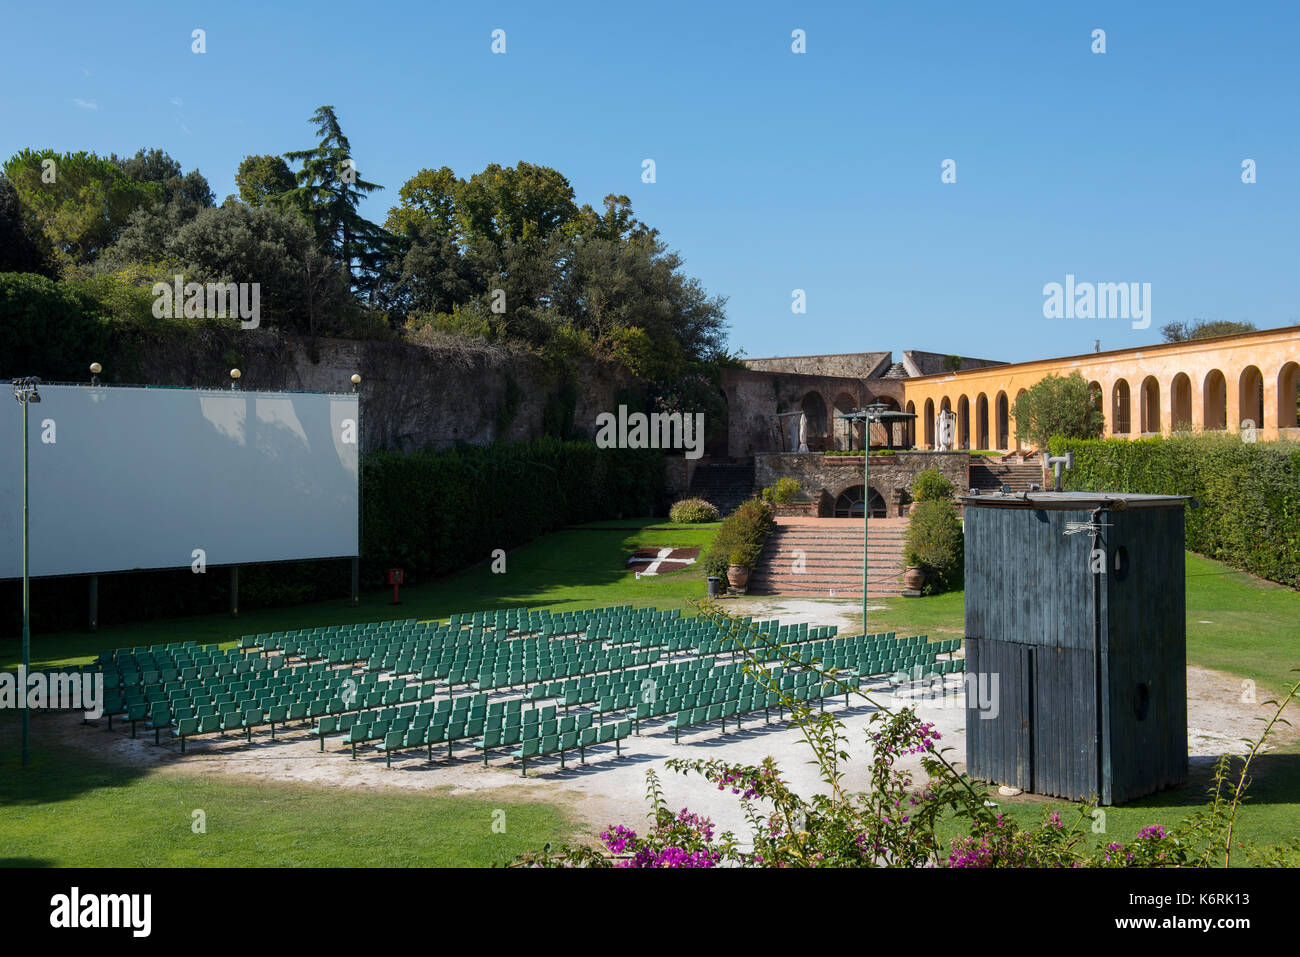 Cinema Giardino Scotto Pisa 2018 Outdoor Cinema Stock Photos And Outdoor Cinema Stock Images